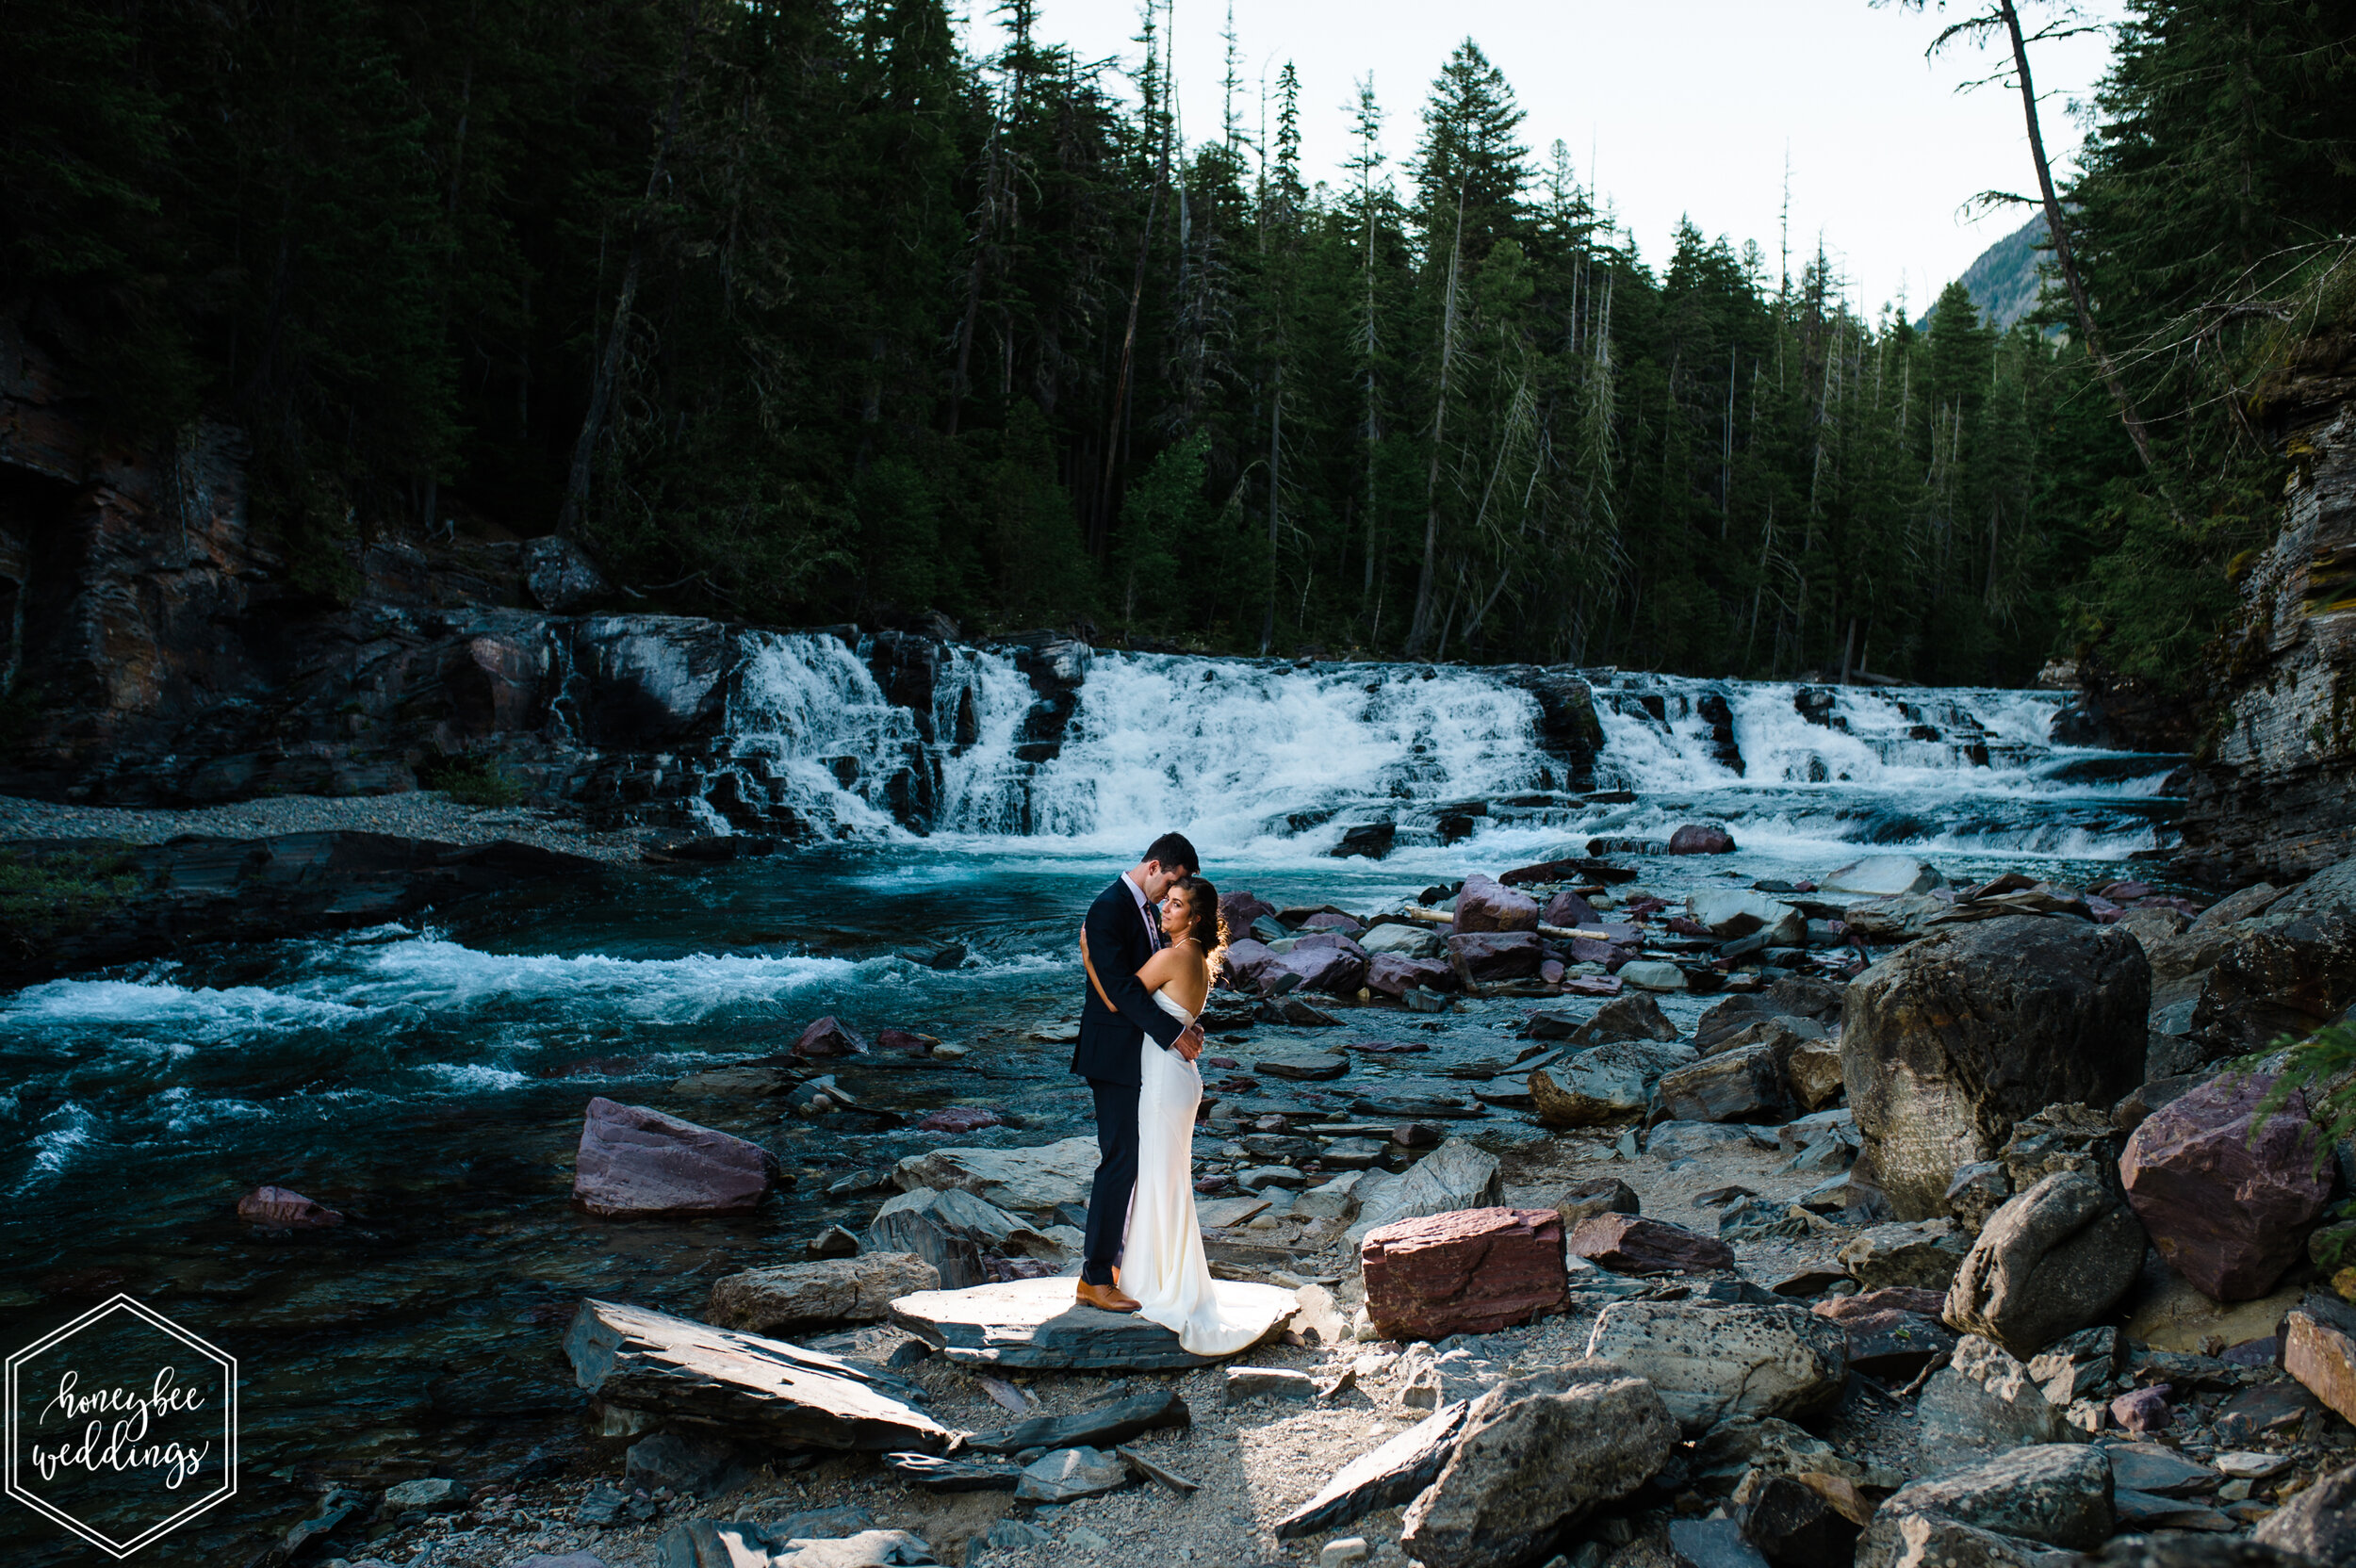 026Glacier National Park Wedding_Glacier Outdoor Center_Honeybee Weddings_Anna & Seth_July 21, 2019-2461.jpg